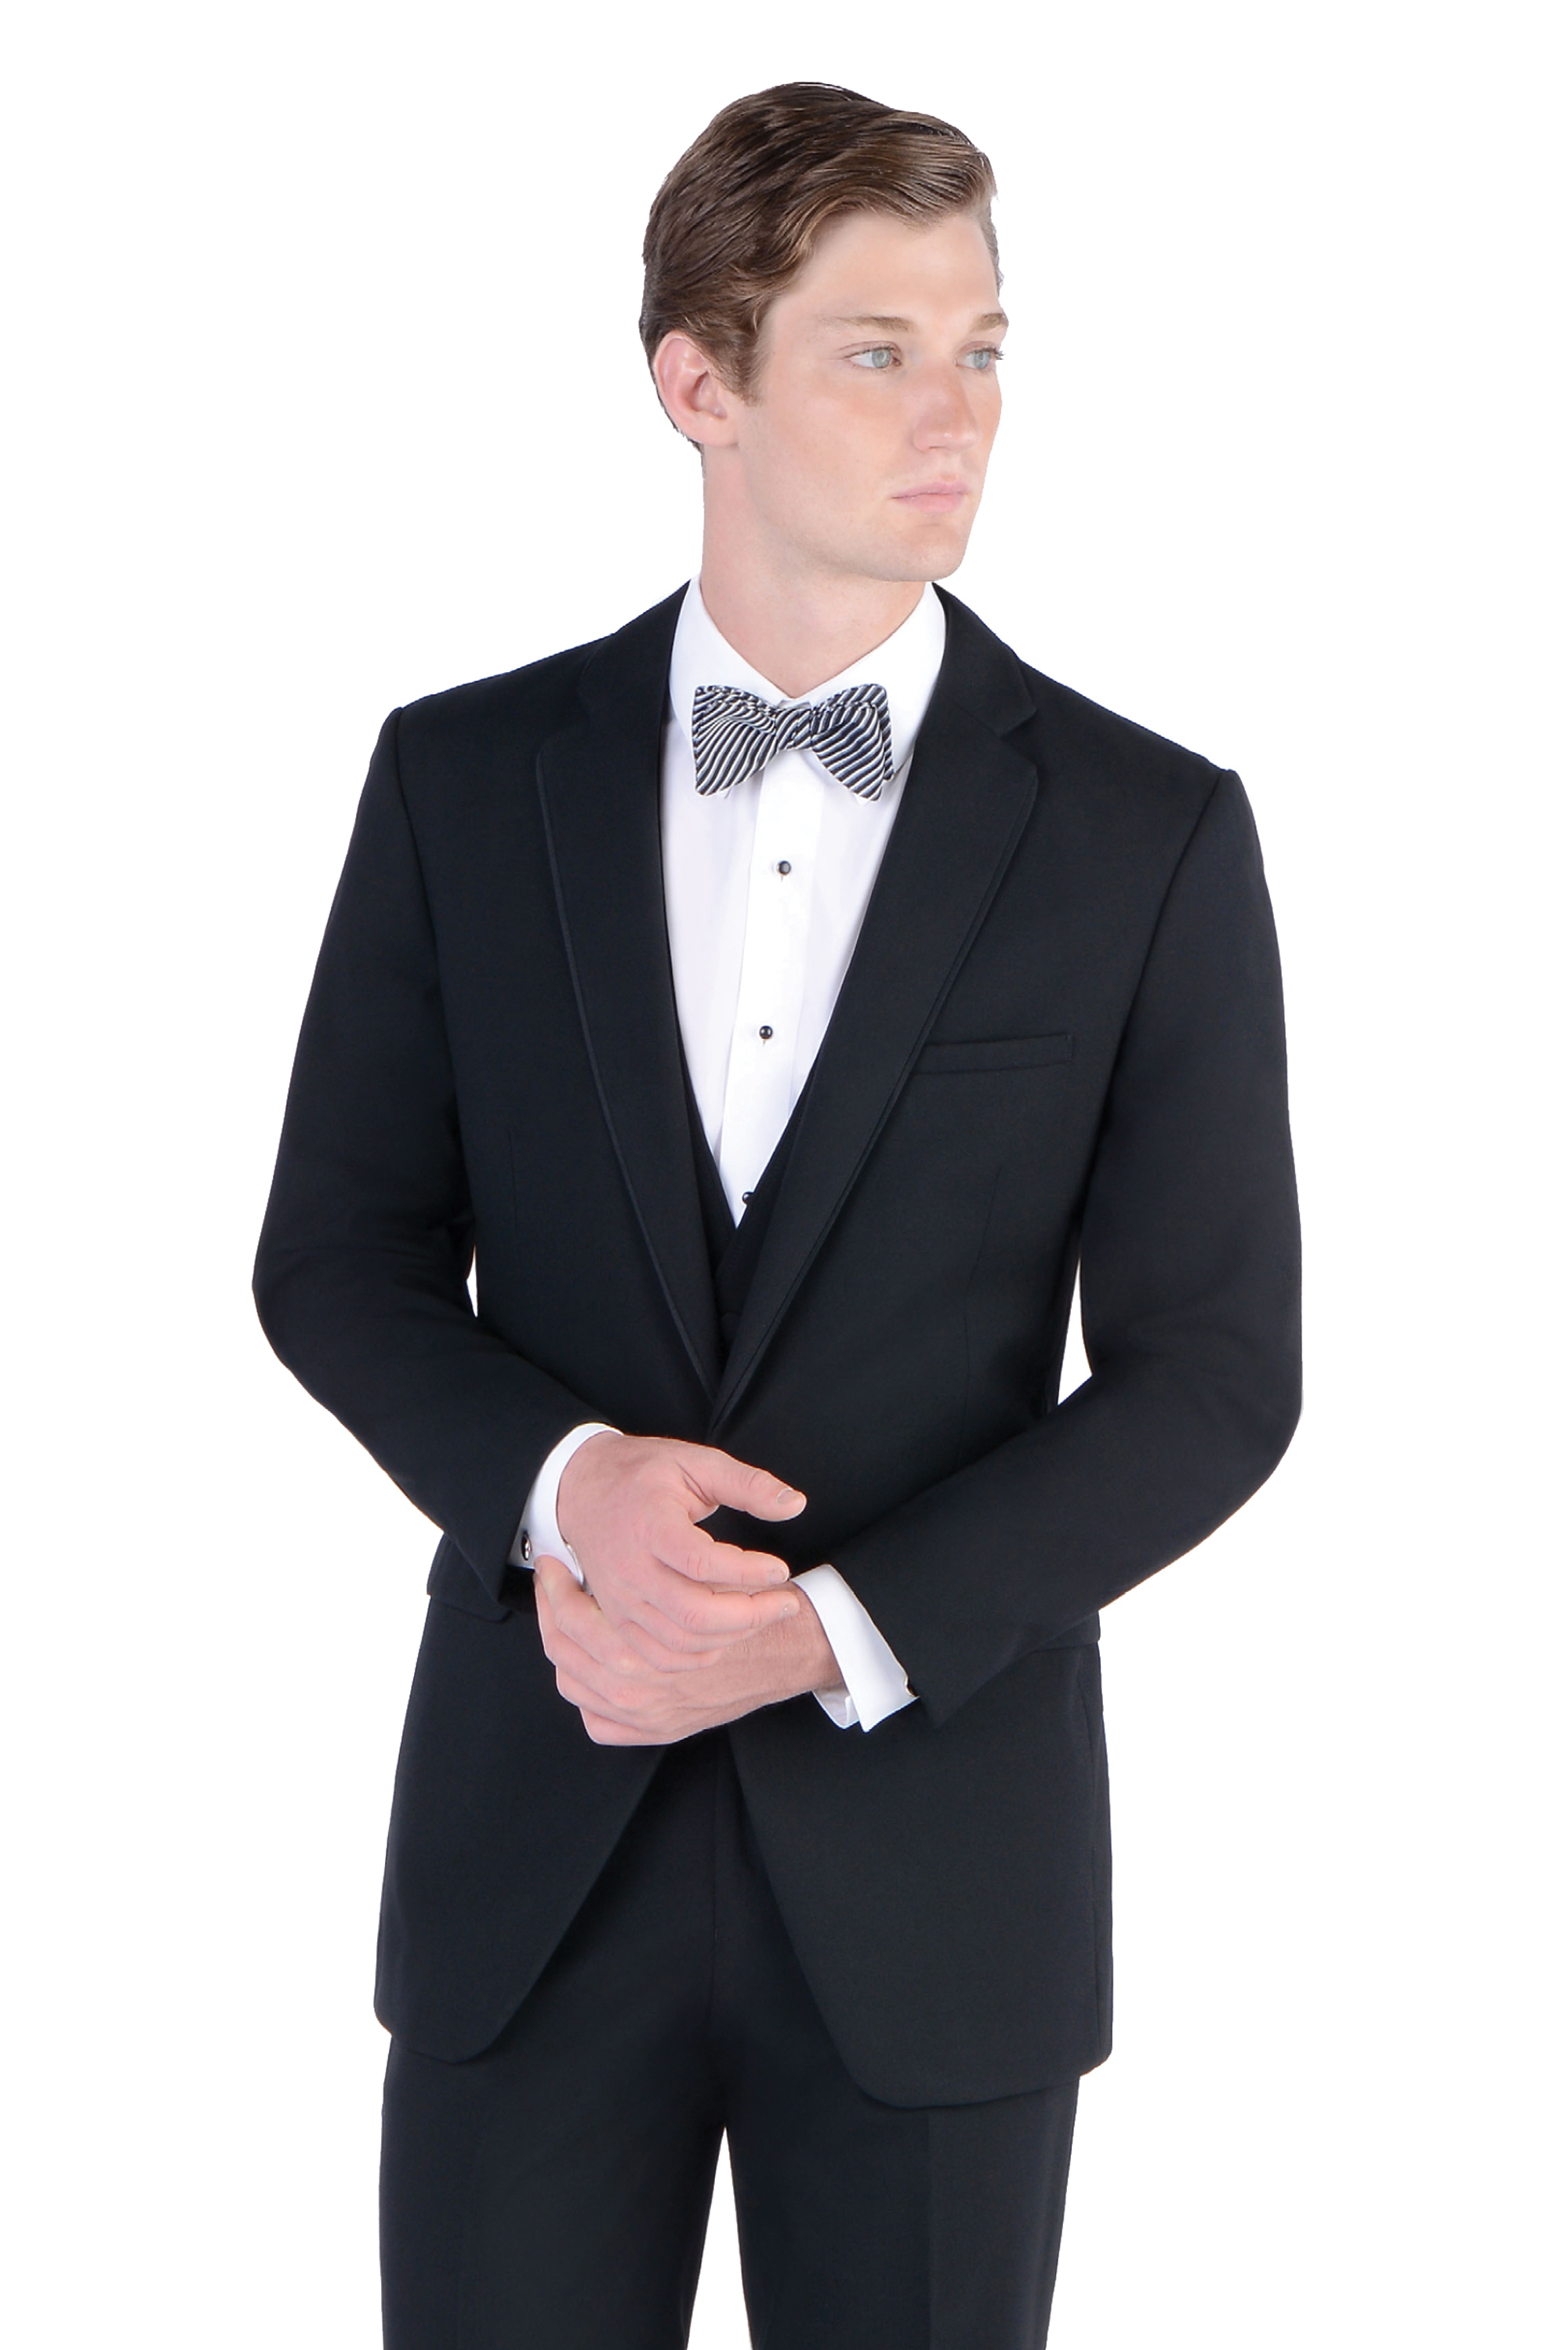 Savvi Formalwear is a cooperative of the finest formalwear retailers in the world. The organization is collectively managed so that customers are seamlessly served across the United States and Canada.